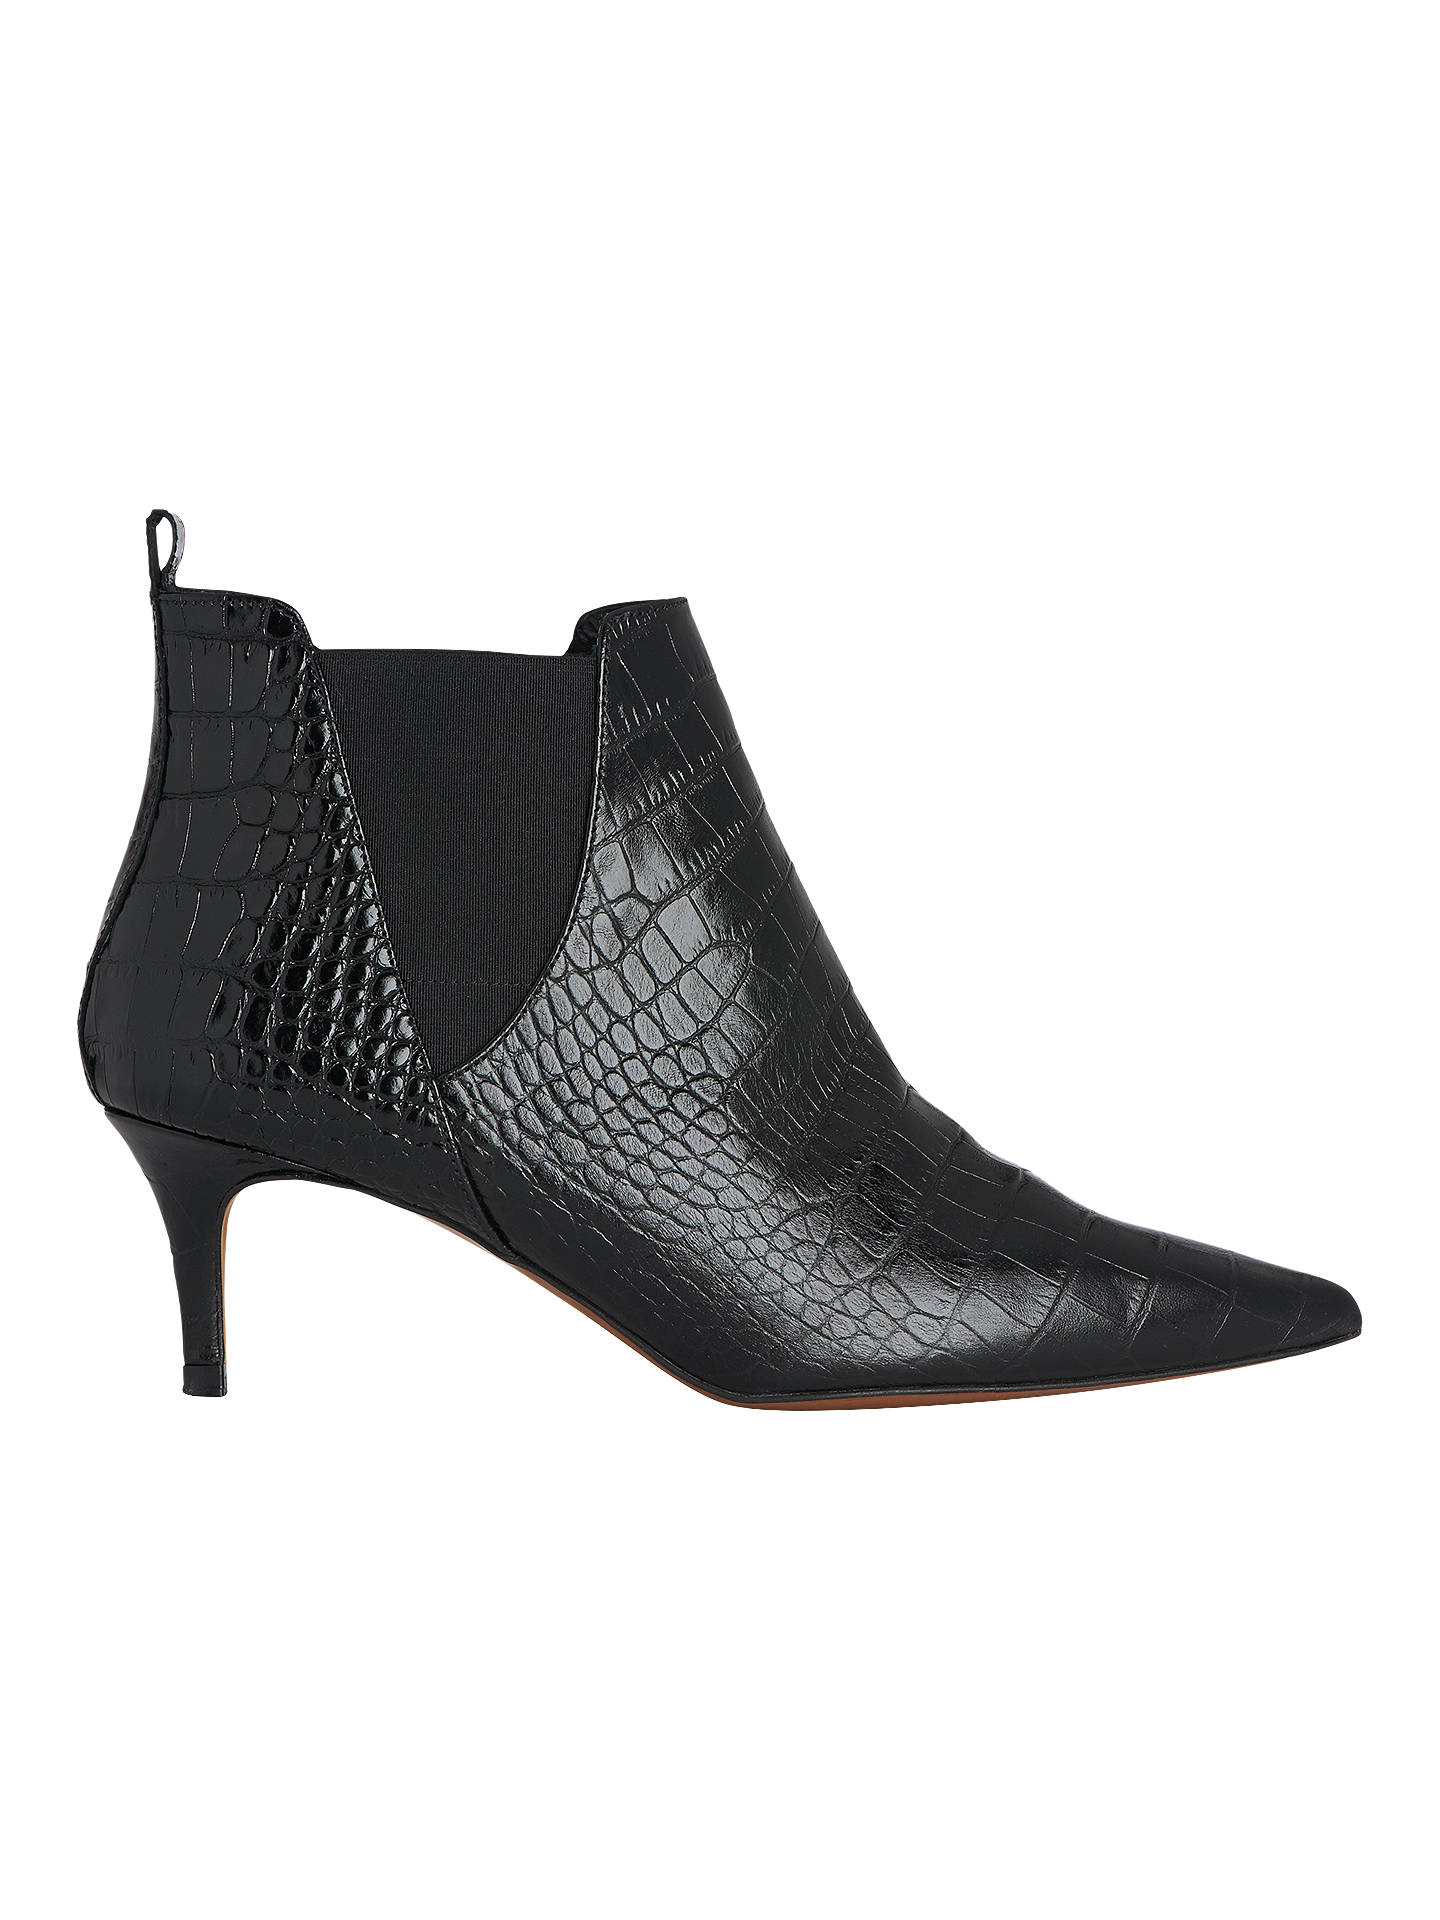 BuyWhistles Orley Pointed Toe Ankle Boots, Black Leather Croc, 3 Online at johnlewis.